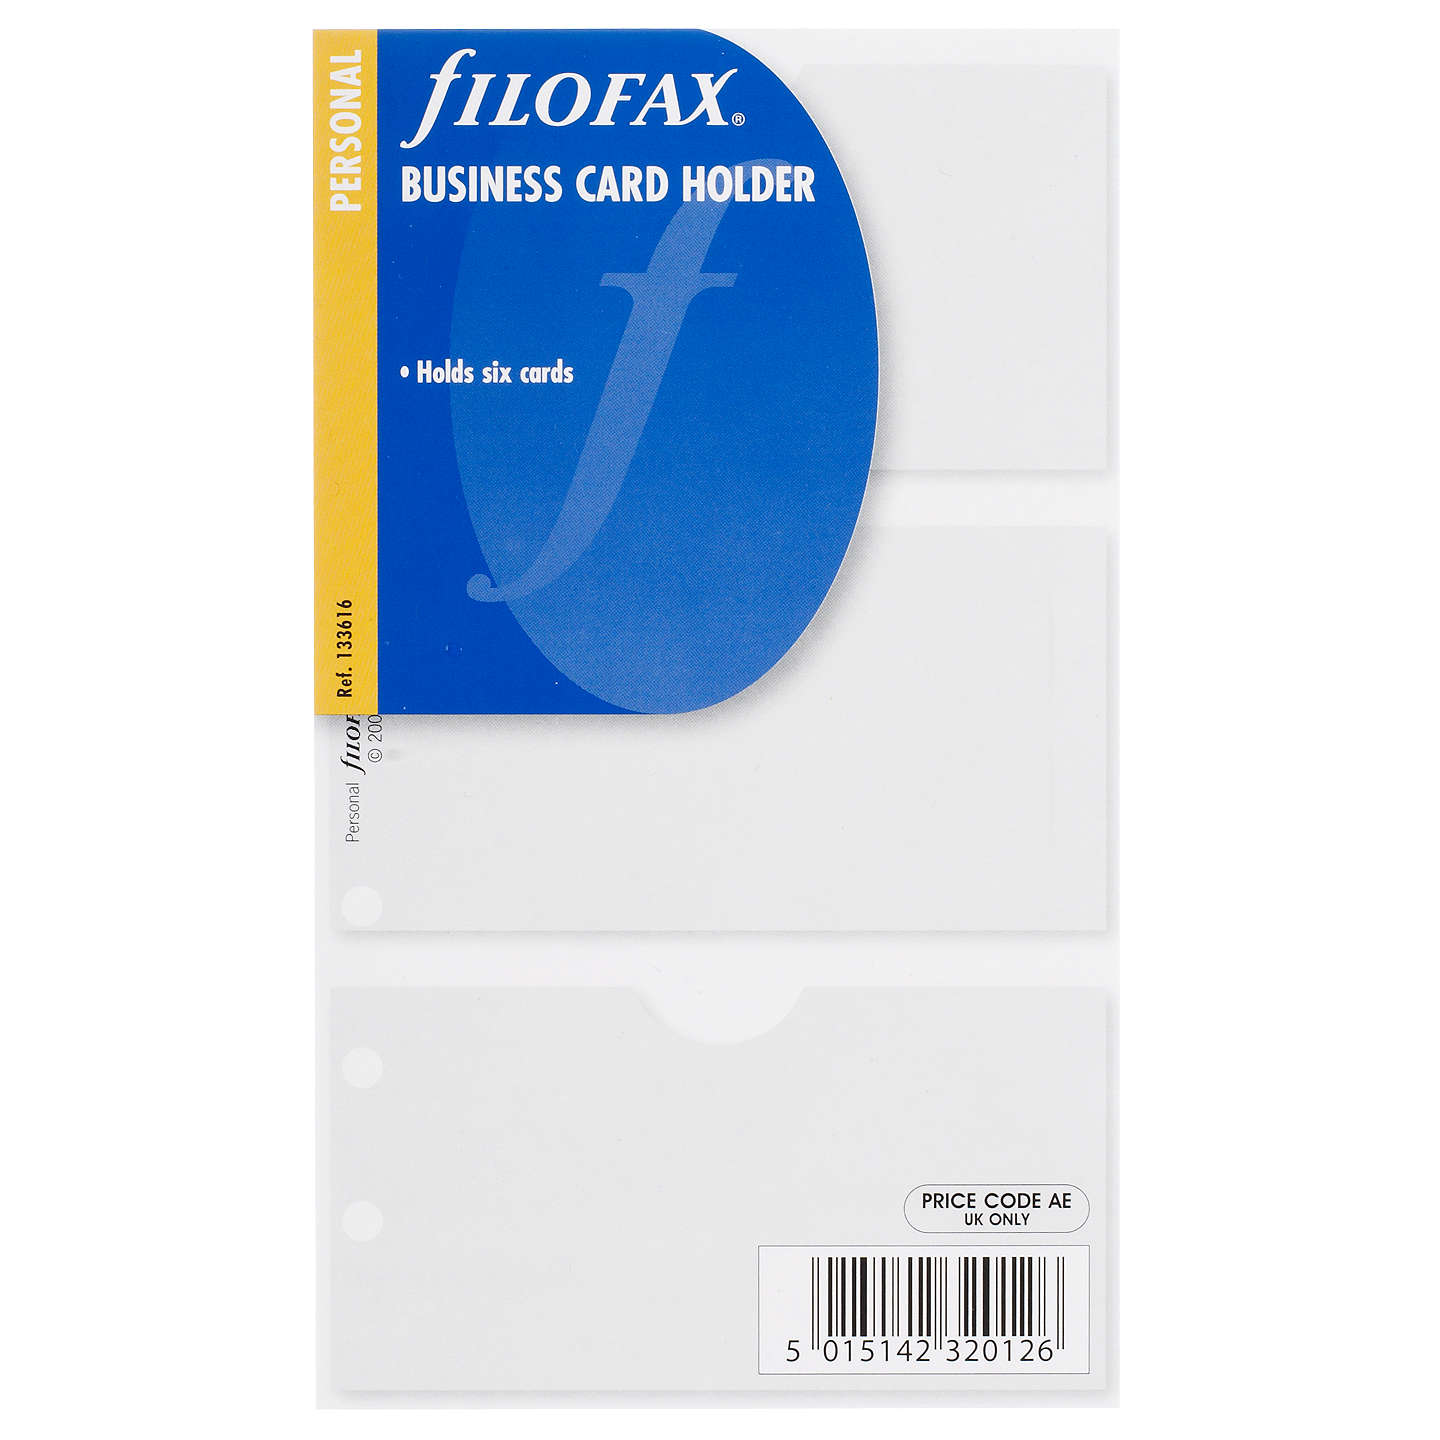 Filofax Personal Inserts, Business Card Holder at John Lewis